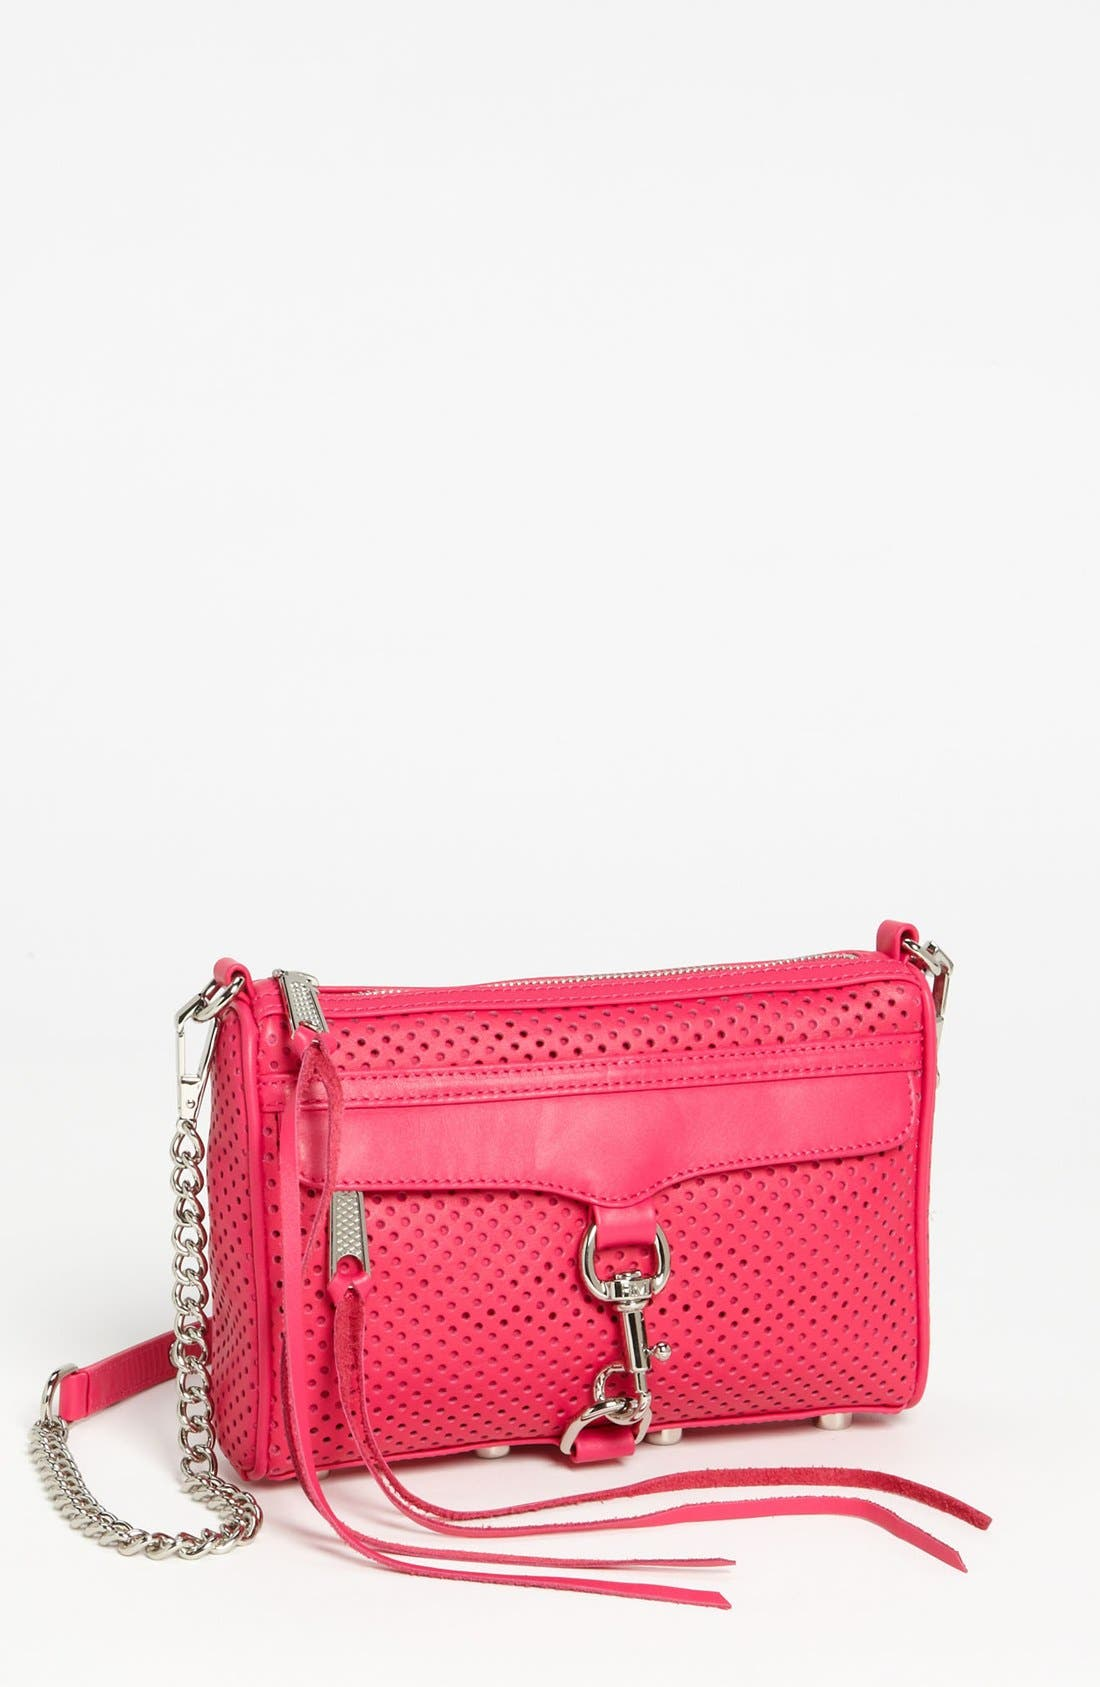 Alternate Image 1 Selected - Rebecca Minkoff 'Mini MAC' Perforated Leather Clutch